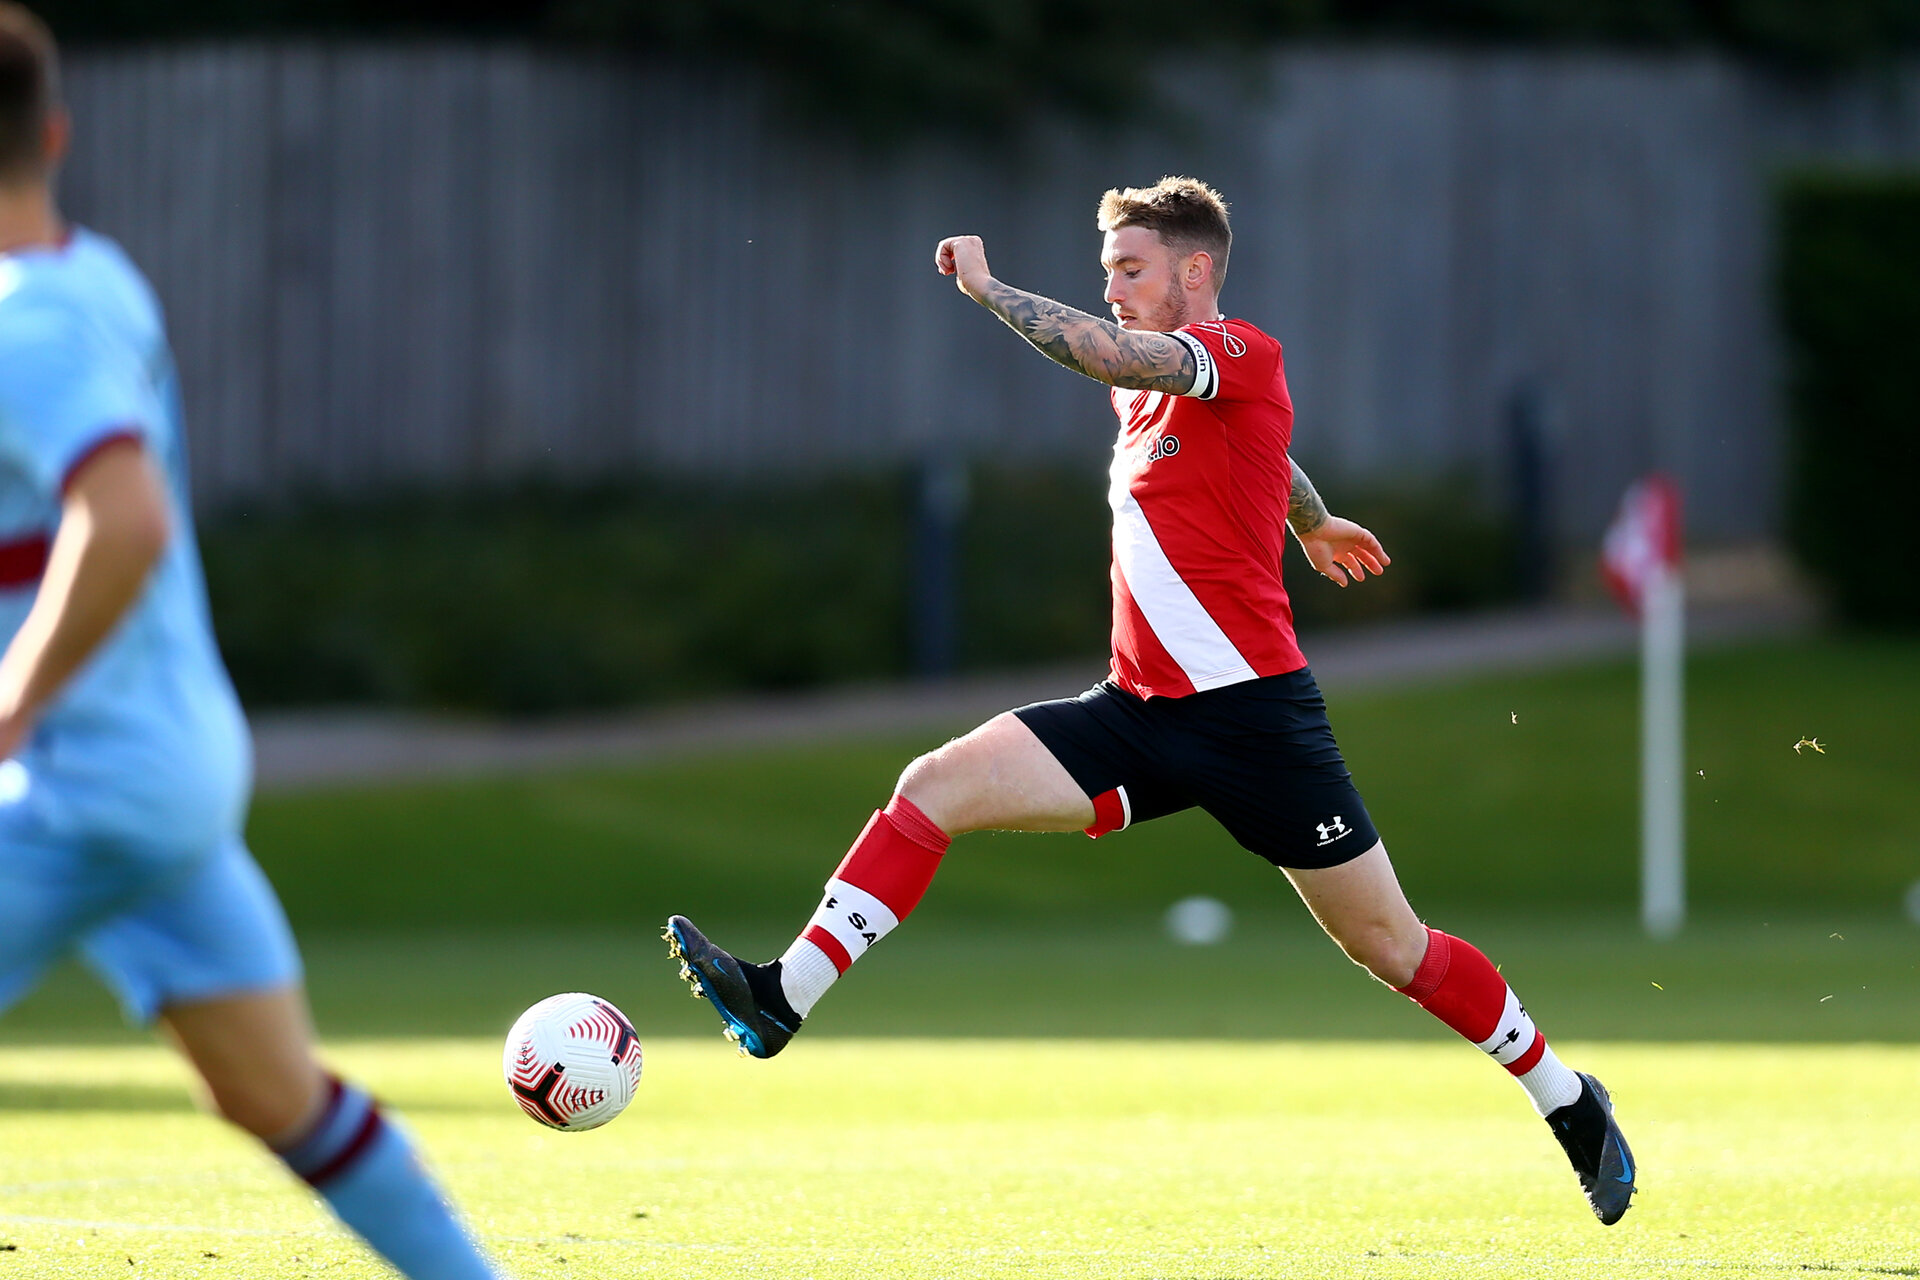 SOUTHAMPTON, ENGLAND - SEPTEMBER 26: during Premier League 2 Match between Southampton B Team and West Ham United at Staplewood Training Ground on September 26, 2020 in Southampton, England. (Photo by Isabelle Field/Southampton FC via Getty Images)